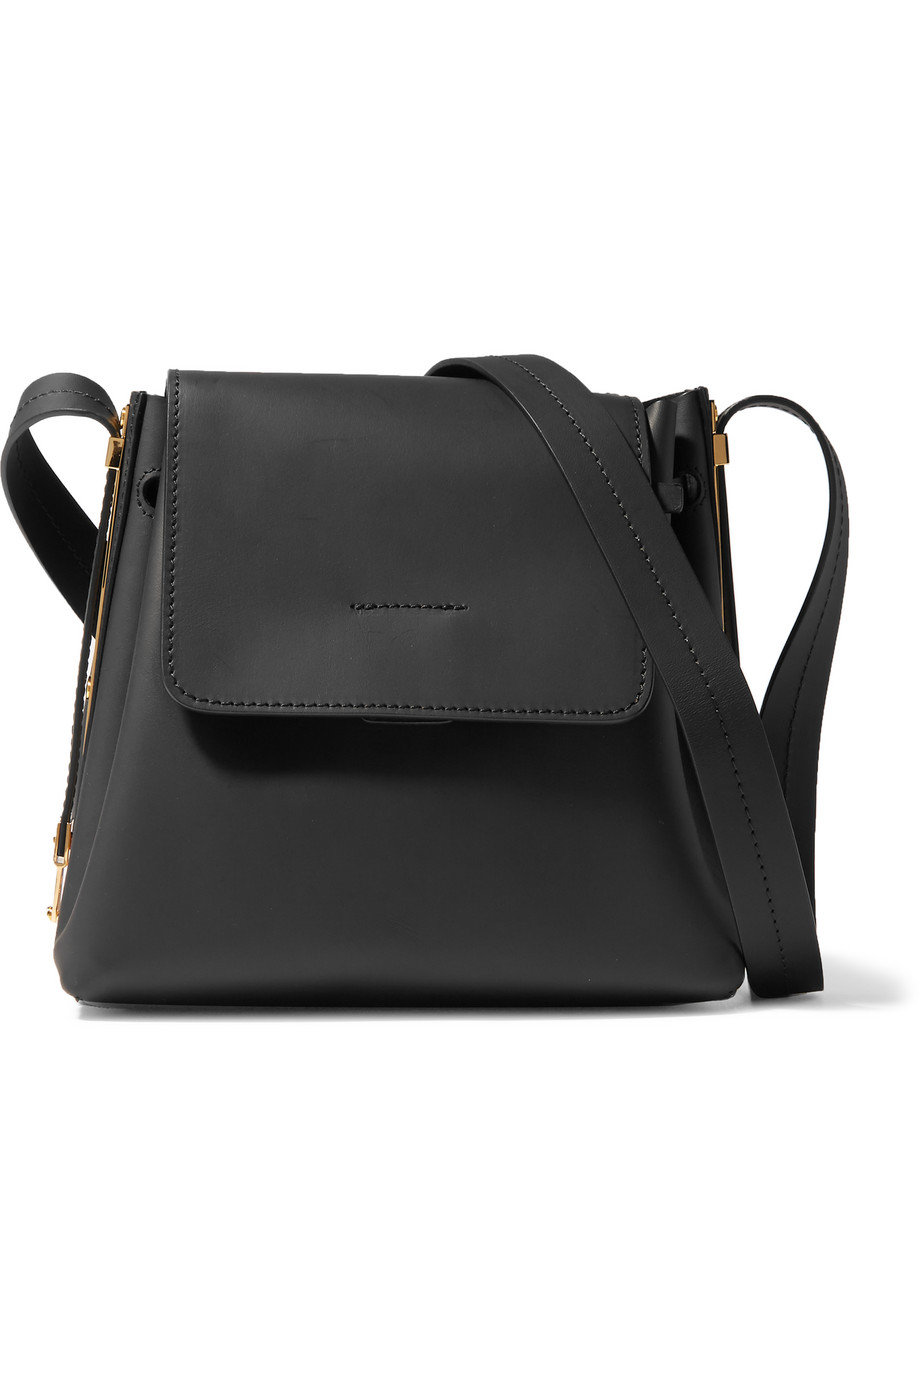 Sophie Hulme Claremont Leather Shoulder Bag, Black, Women's